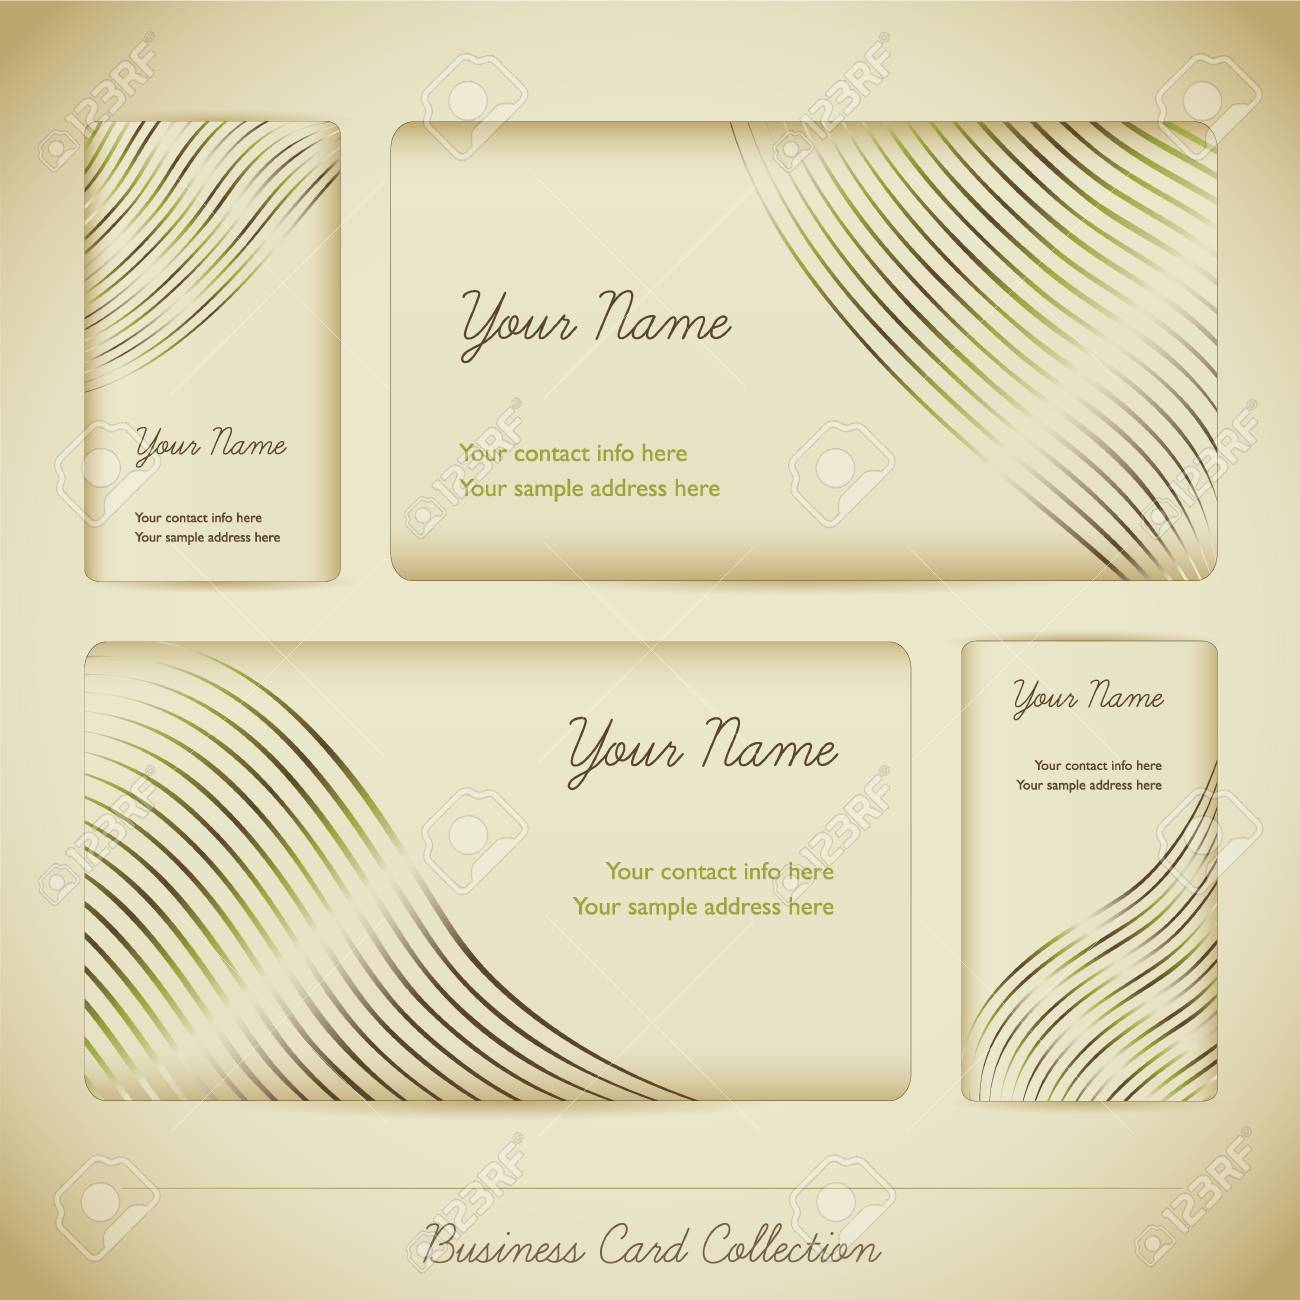 Business Card Collection Stock Vector - 17243113